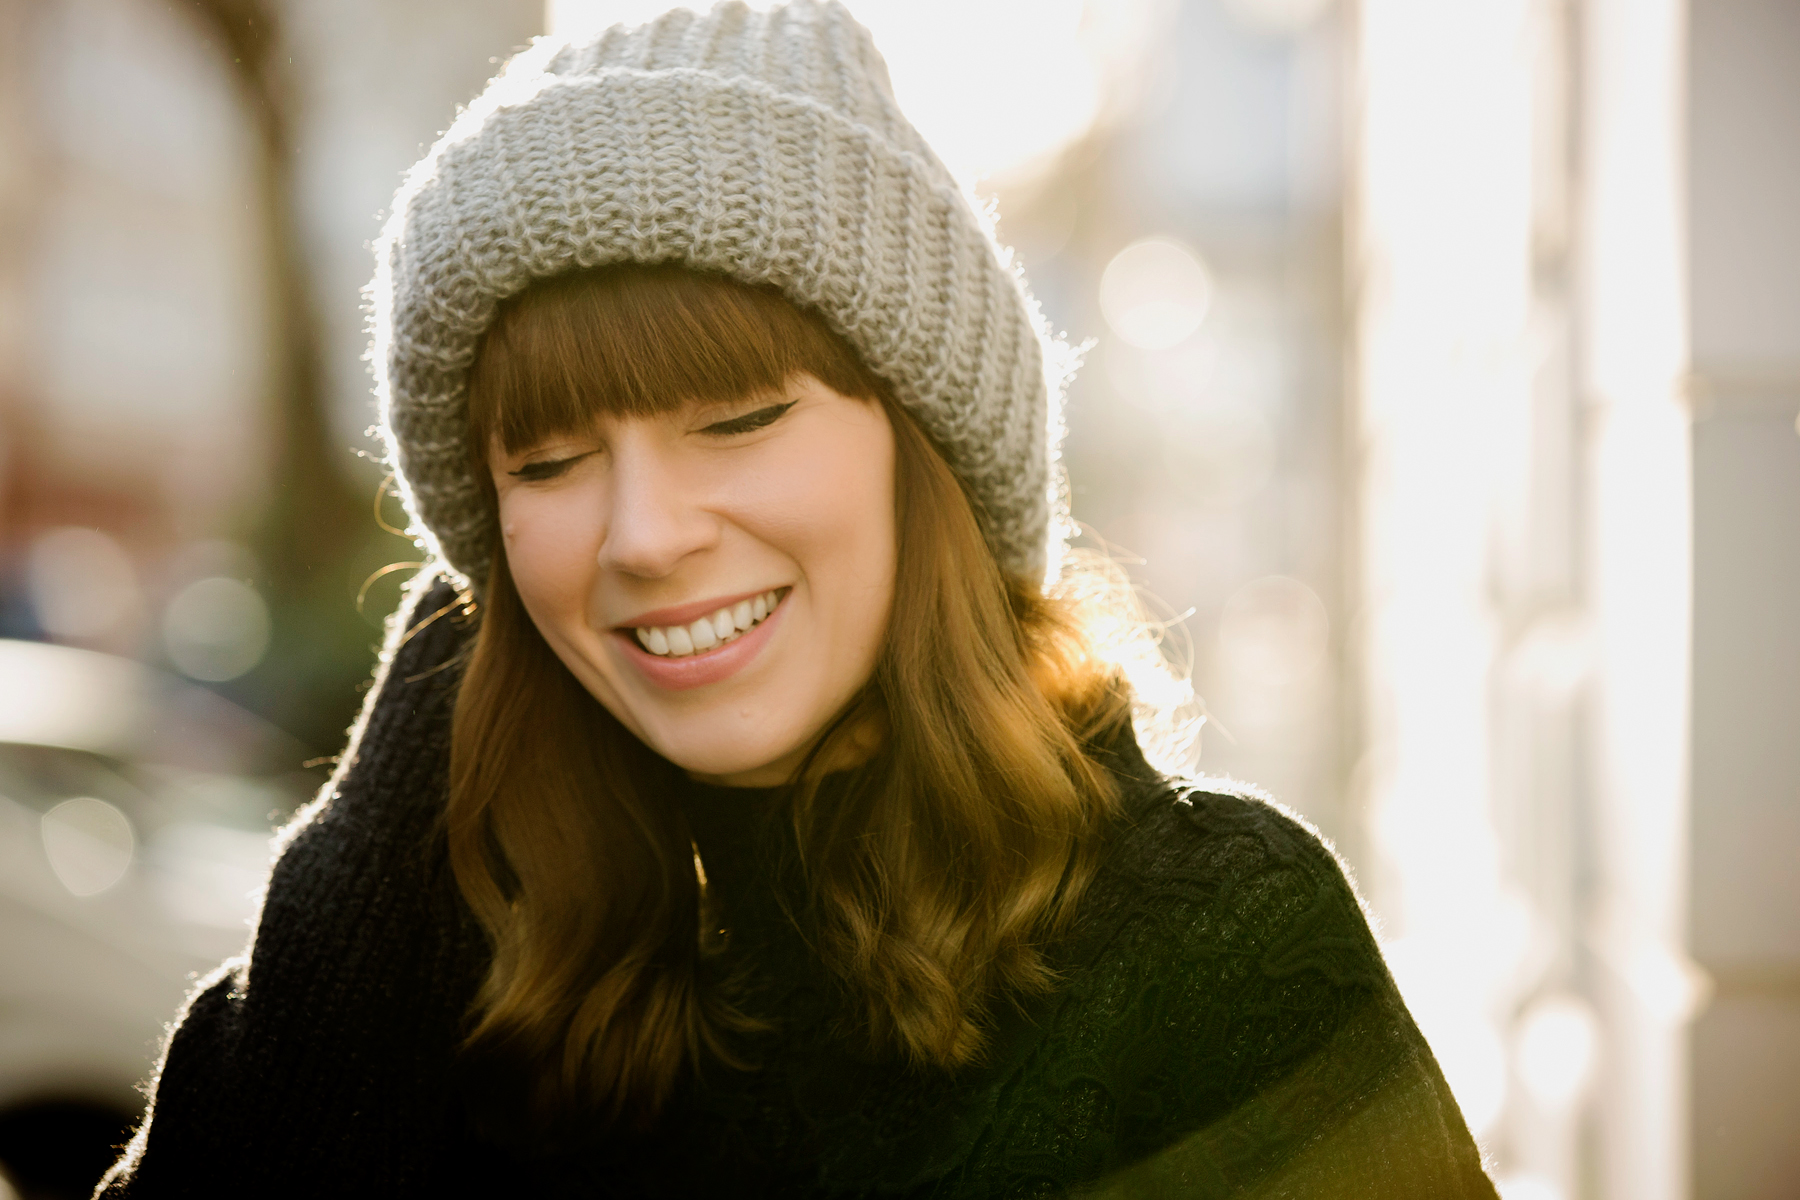 winter smile knit grey beanie hat wool knitting happy smiling girl bangs waves brunette cute happy happiness motivation blogger style portrait photography fotografie film max bechmann cats & dogs fashionblog ricarda schernus modeblogger düsseldorf sunny 1